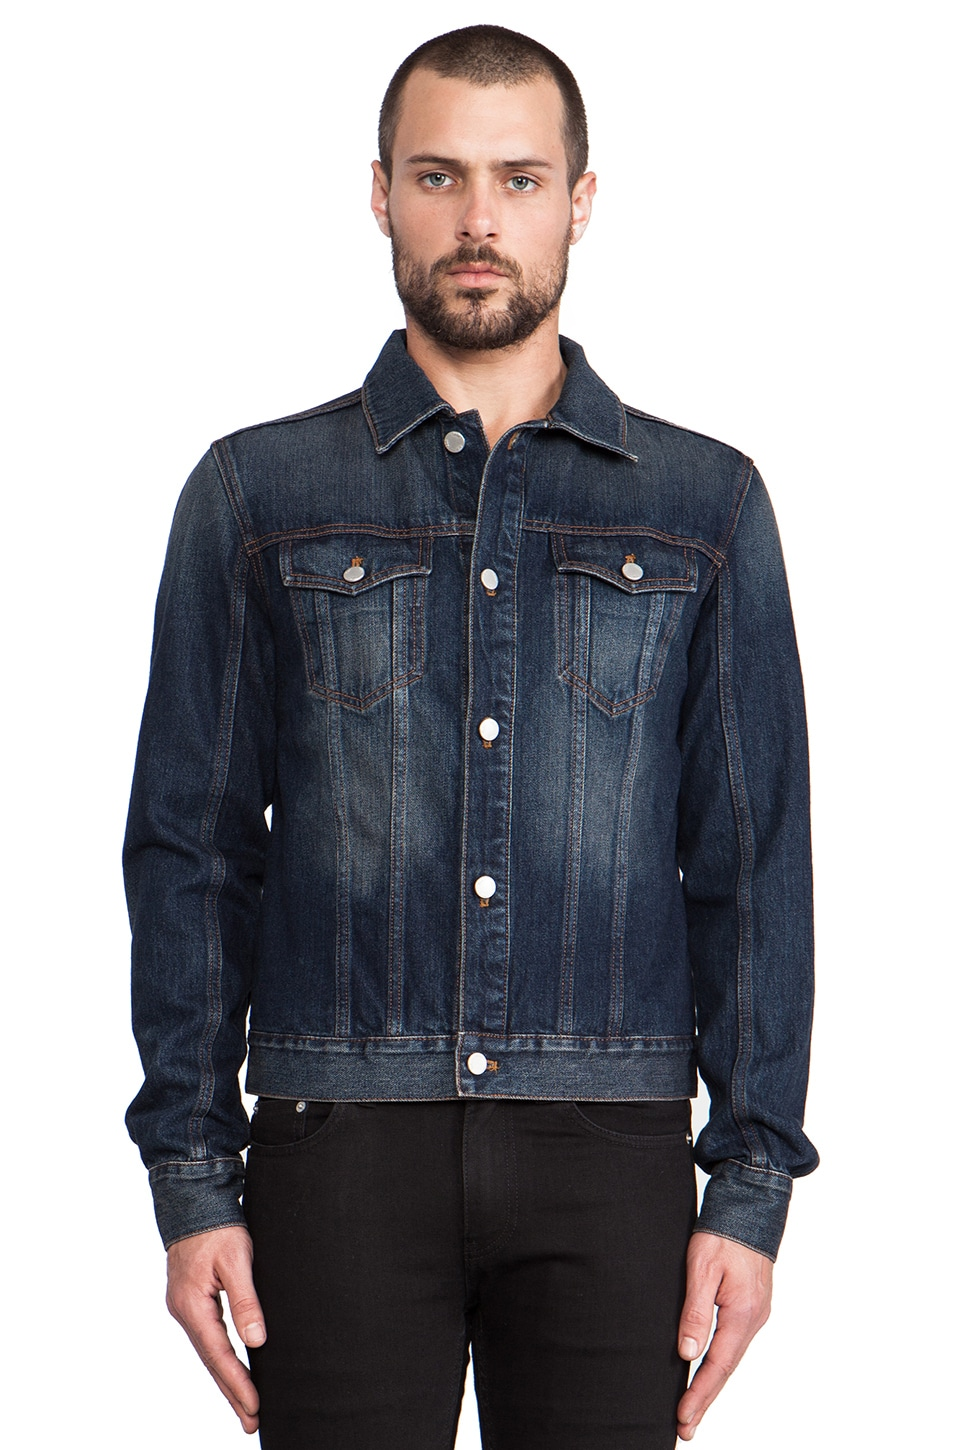 BLK DNM Jean Jacket 5 in Duane Blue